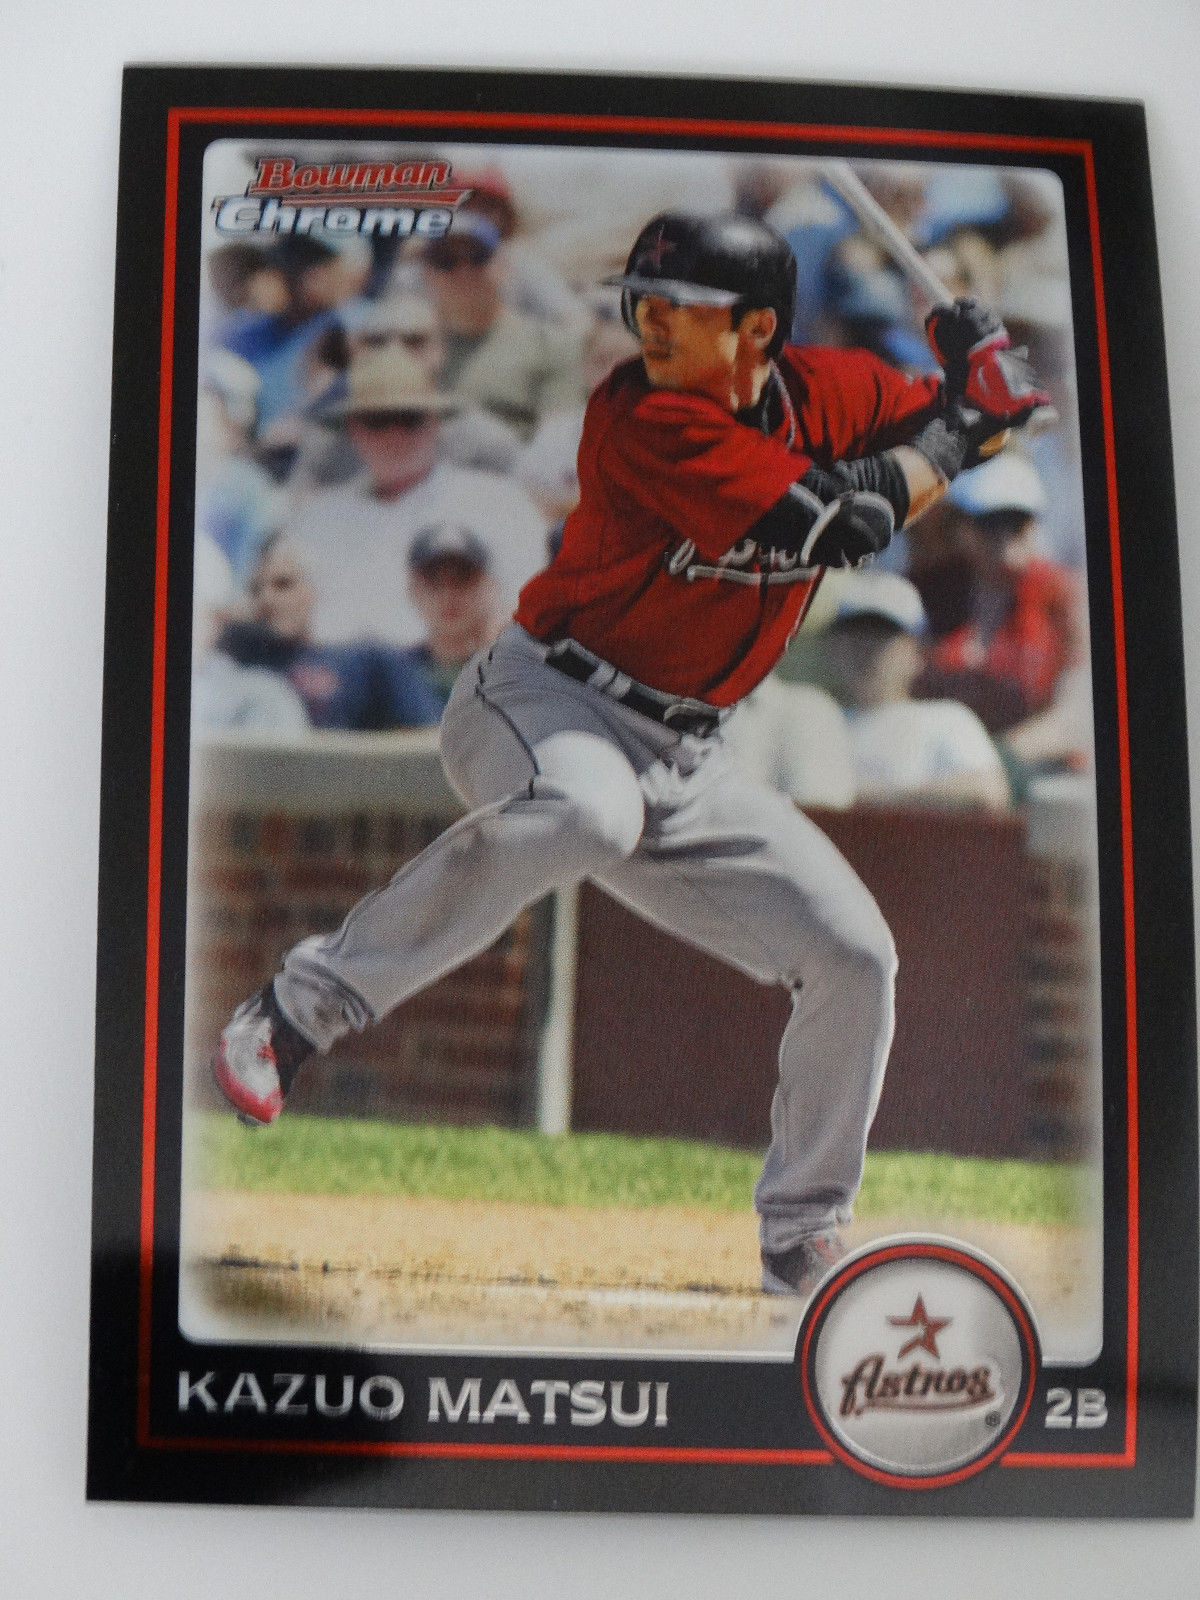 Primary image for 2010 Bowman Chrome #81 Kazuo Matsui Houston Astros Baseball Card